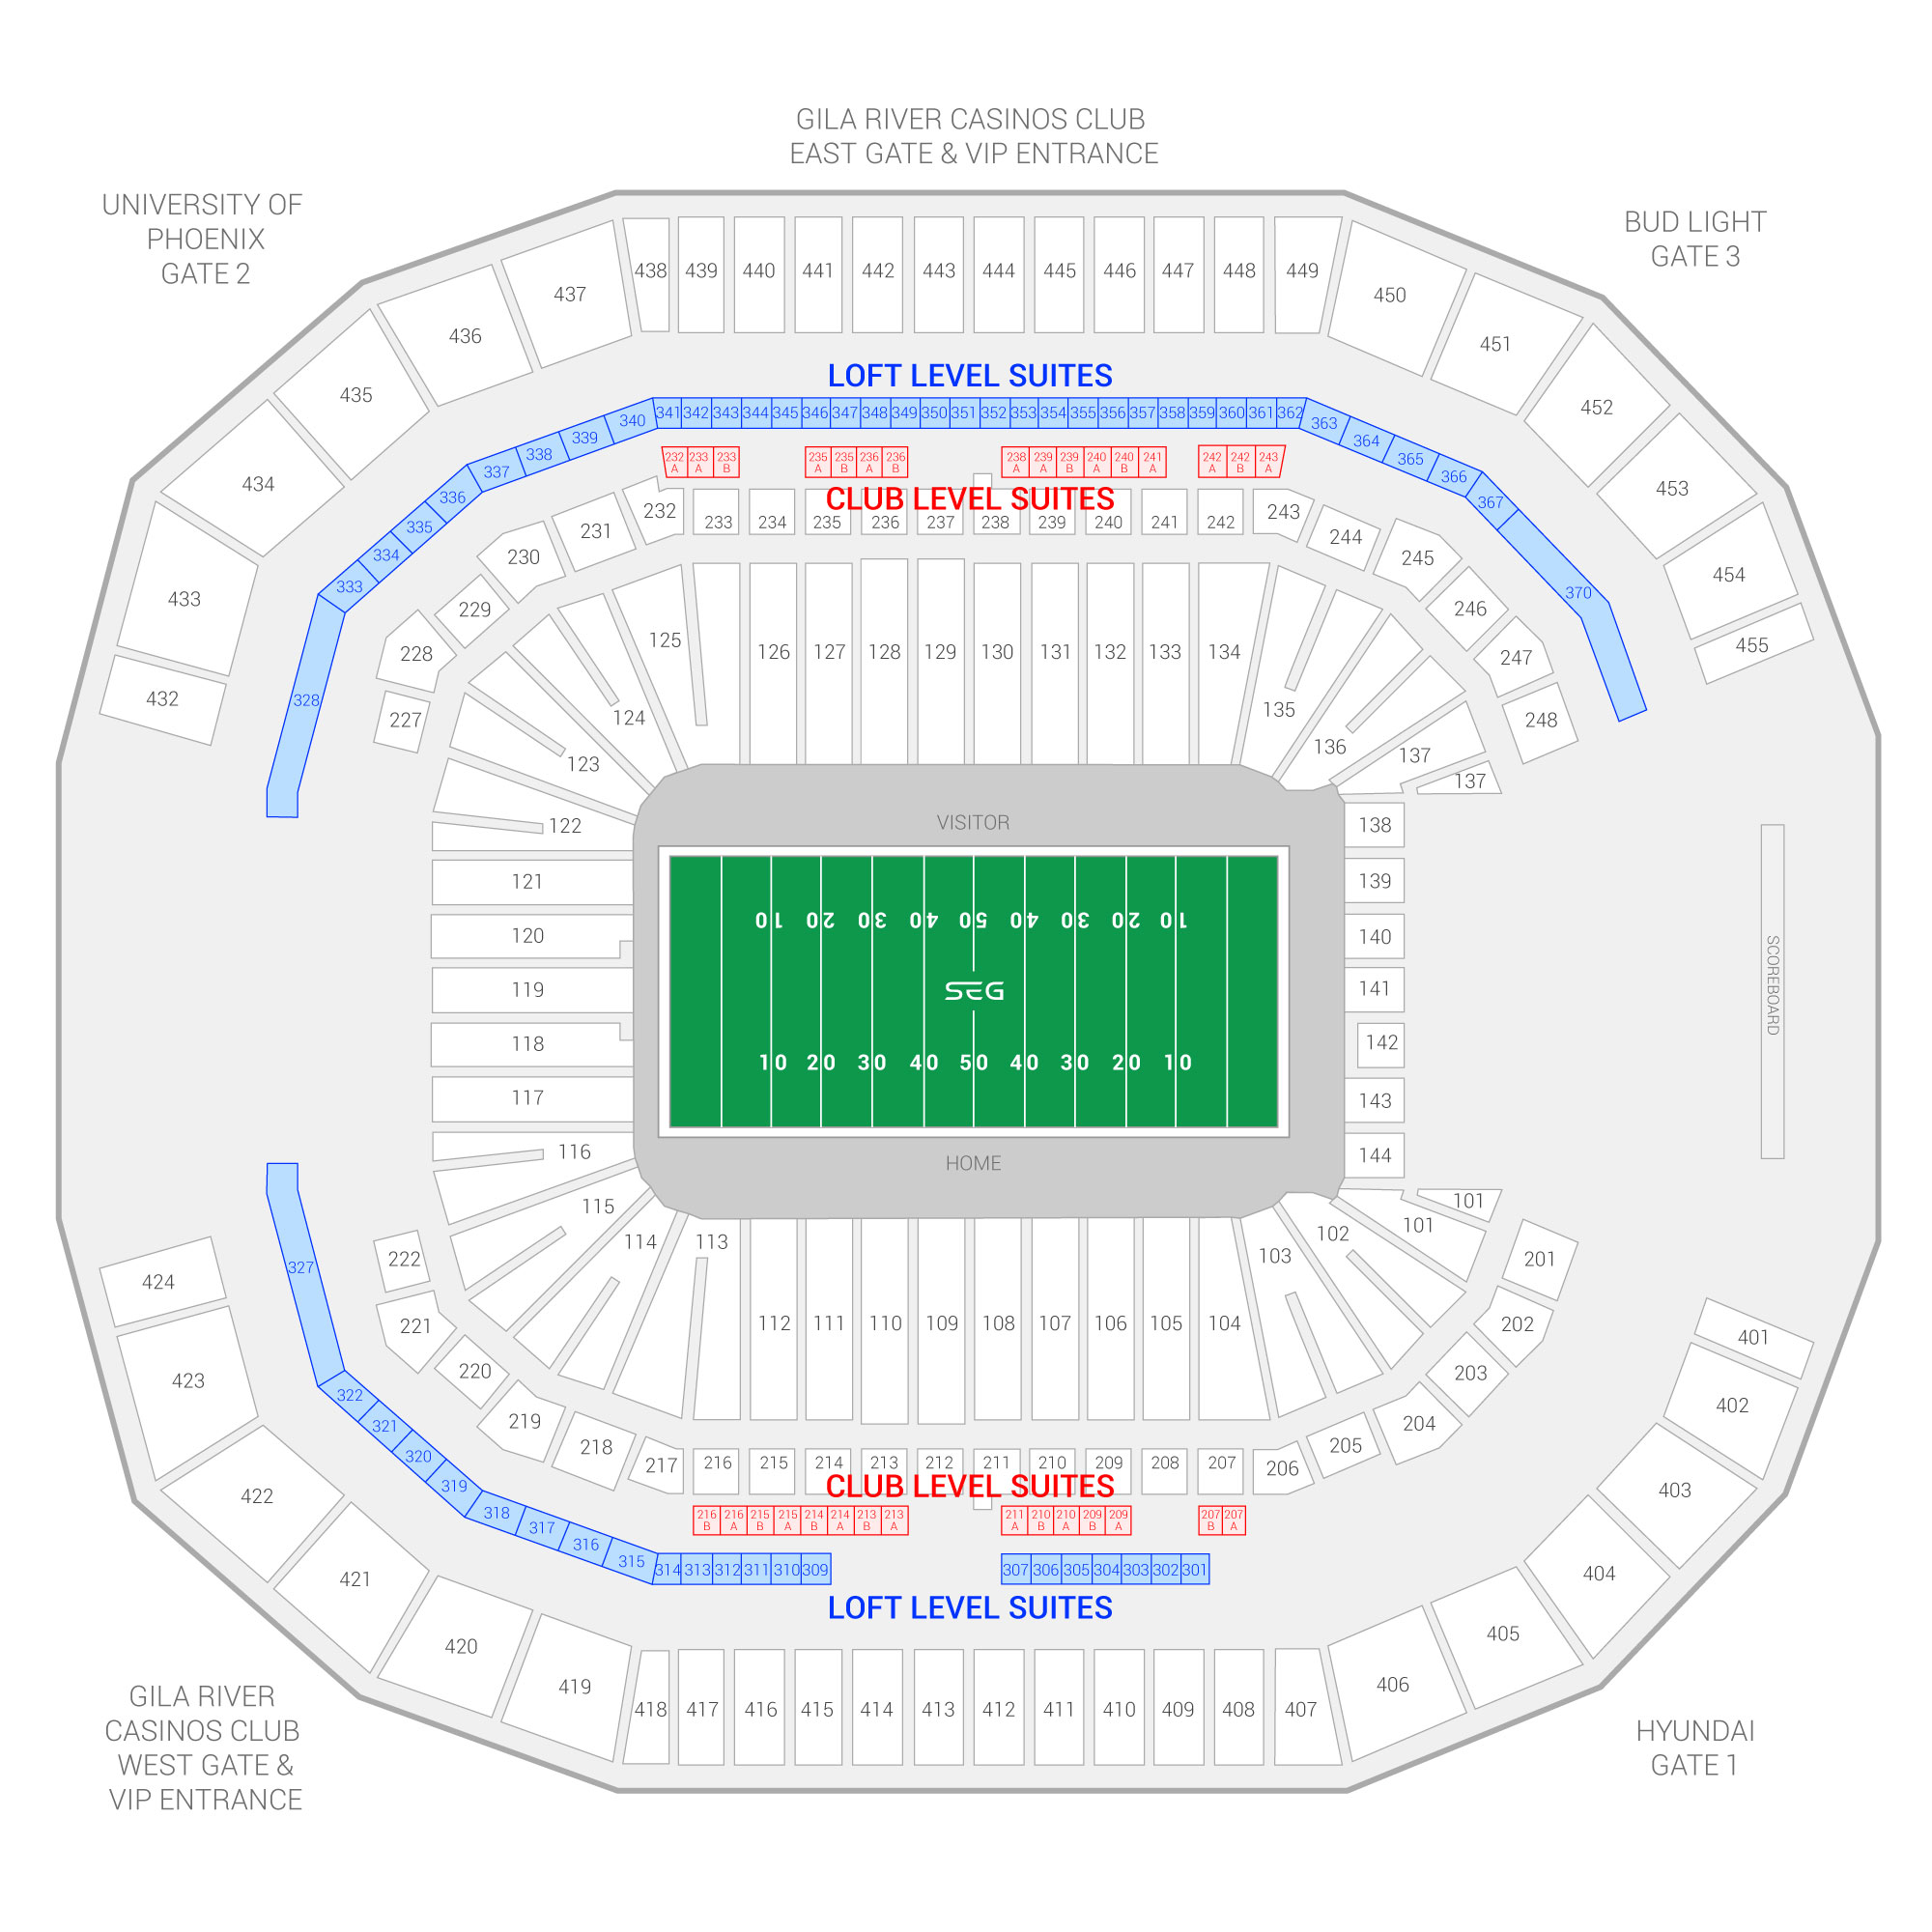 State Farm Stadium (Formerly University of Phoenix Stadium) / Fiesta Bowl Suite Map and Seating Chart